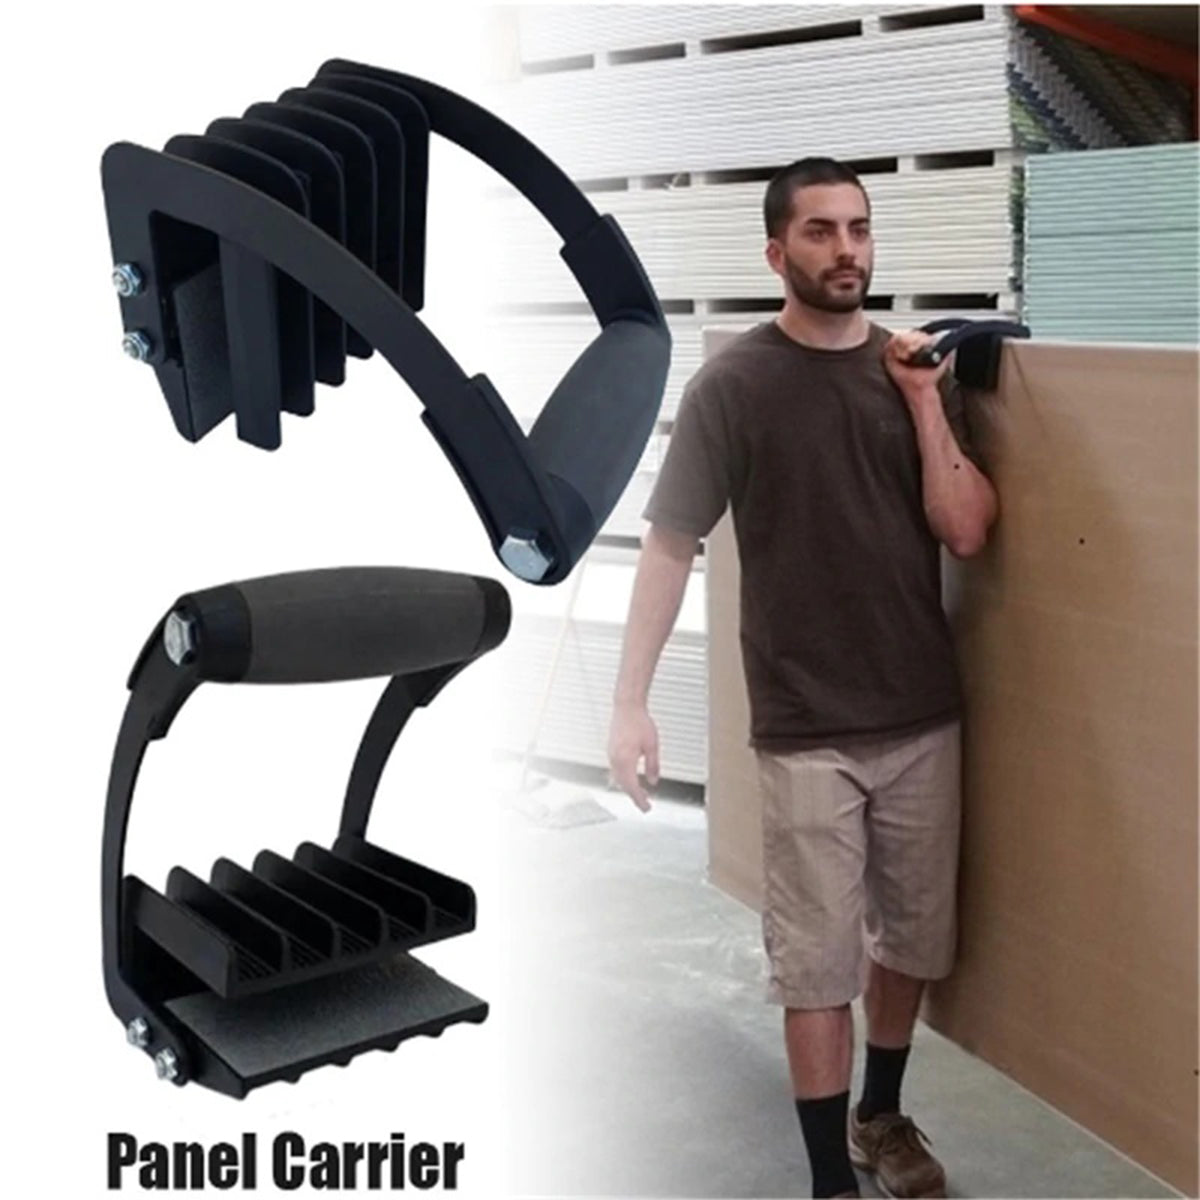 Furniture Accessory Panel Carrier Easy Lifting Gorilla Grip